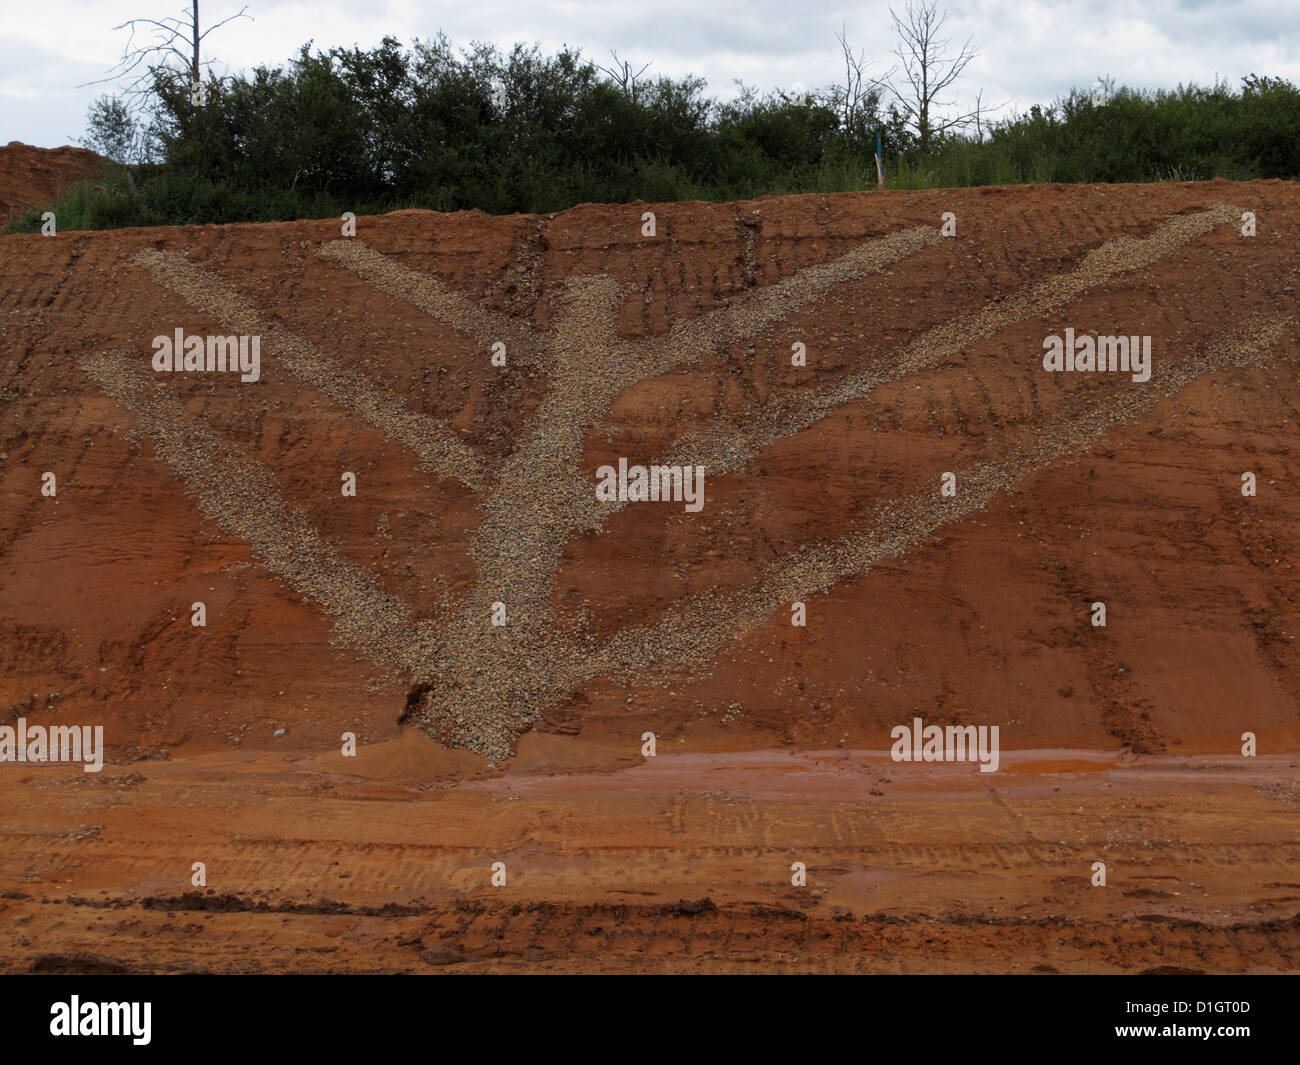 counterfort herringbone drain drains in a cutting on a new road construction site uk - Stock Image